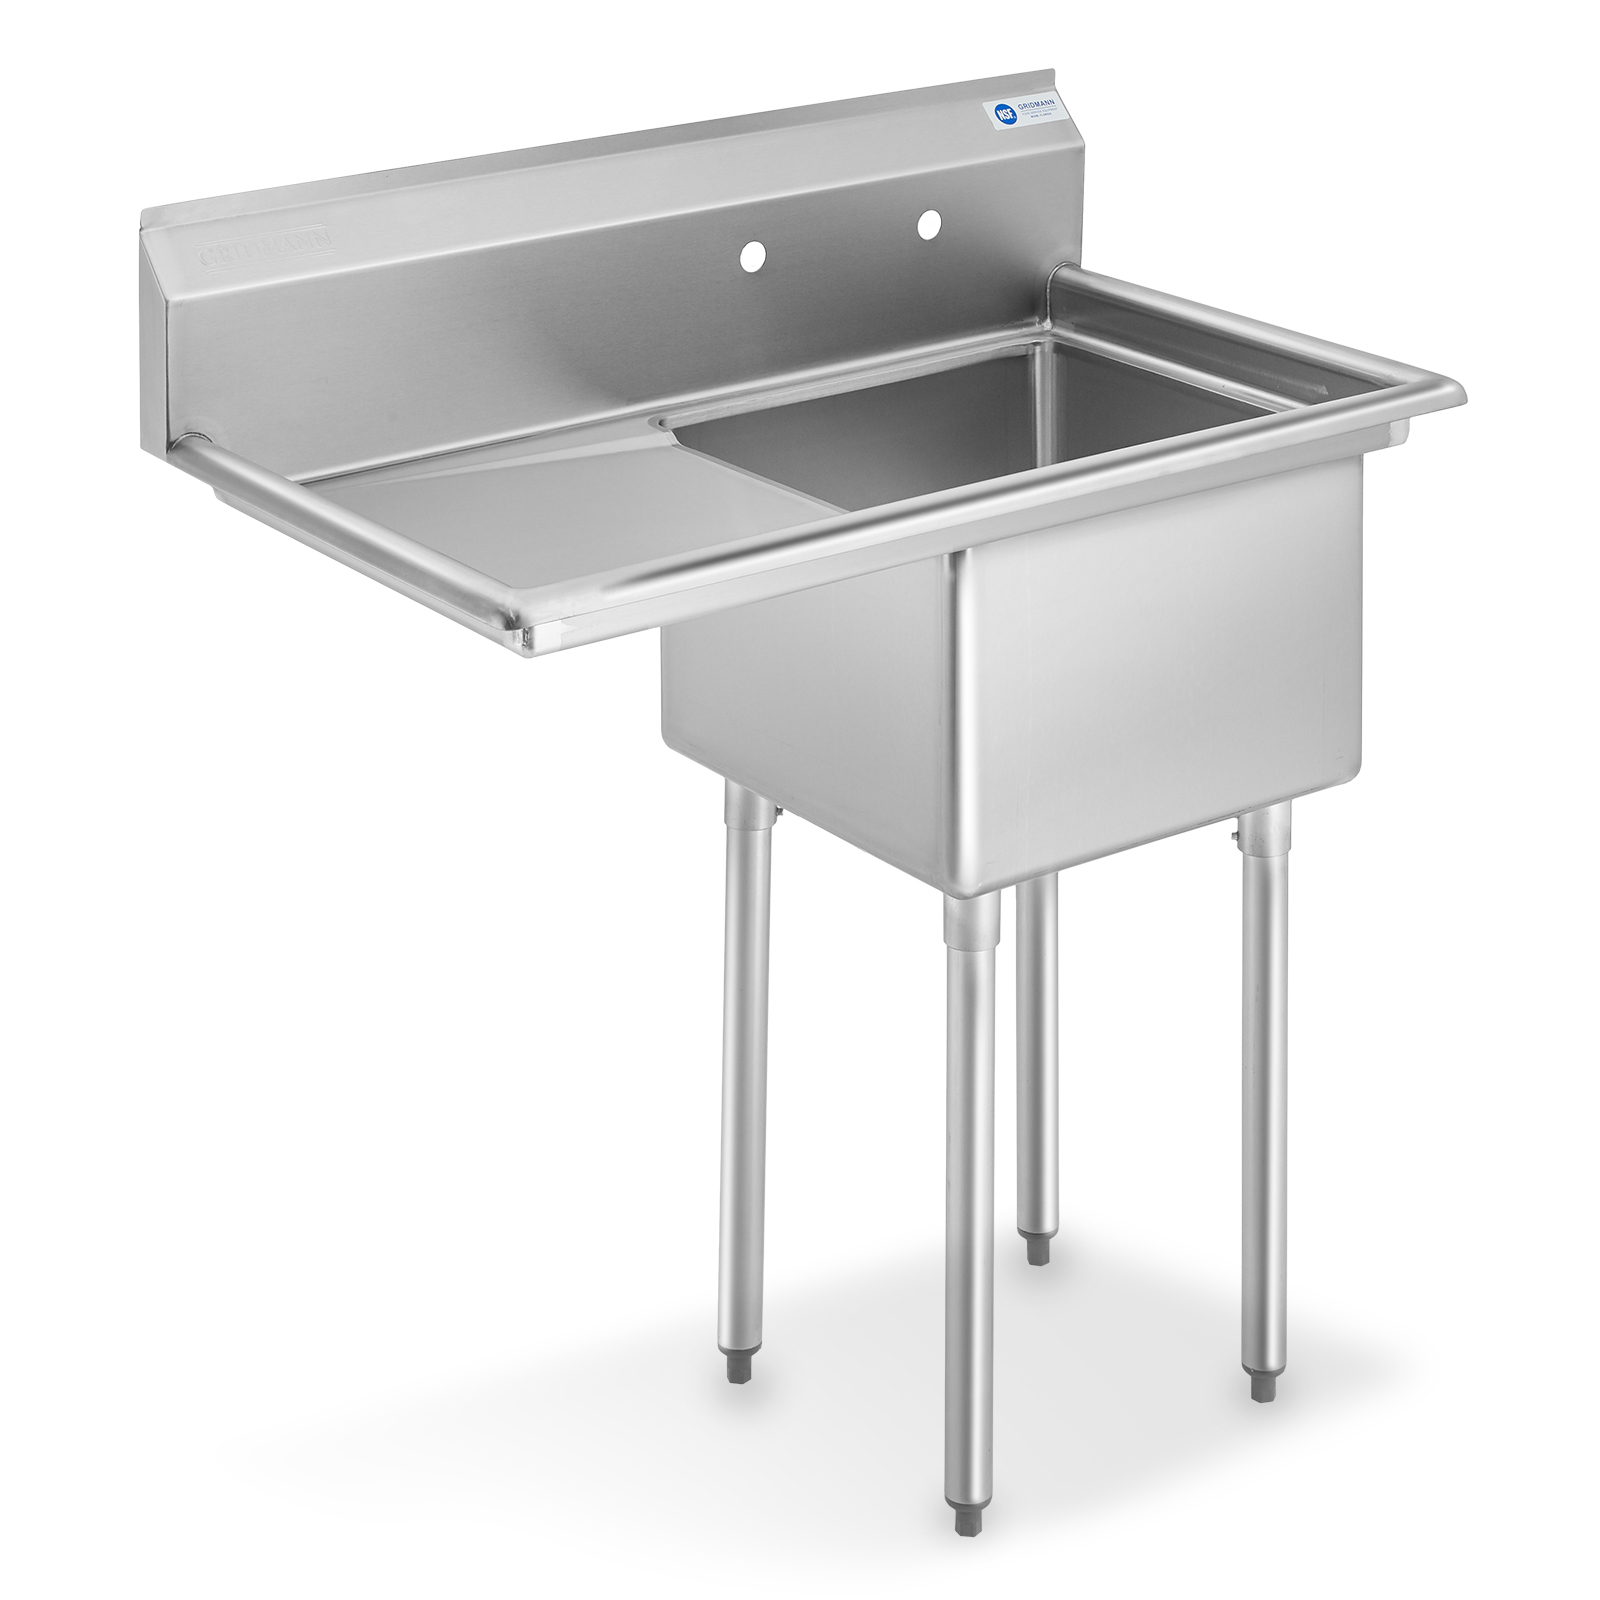 12 In Gridmann Nsf Stainless Steel 18 Single Bowl Commercial